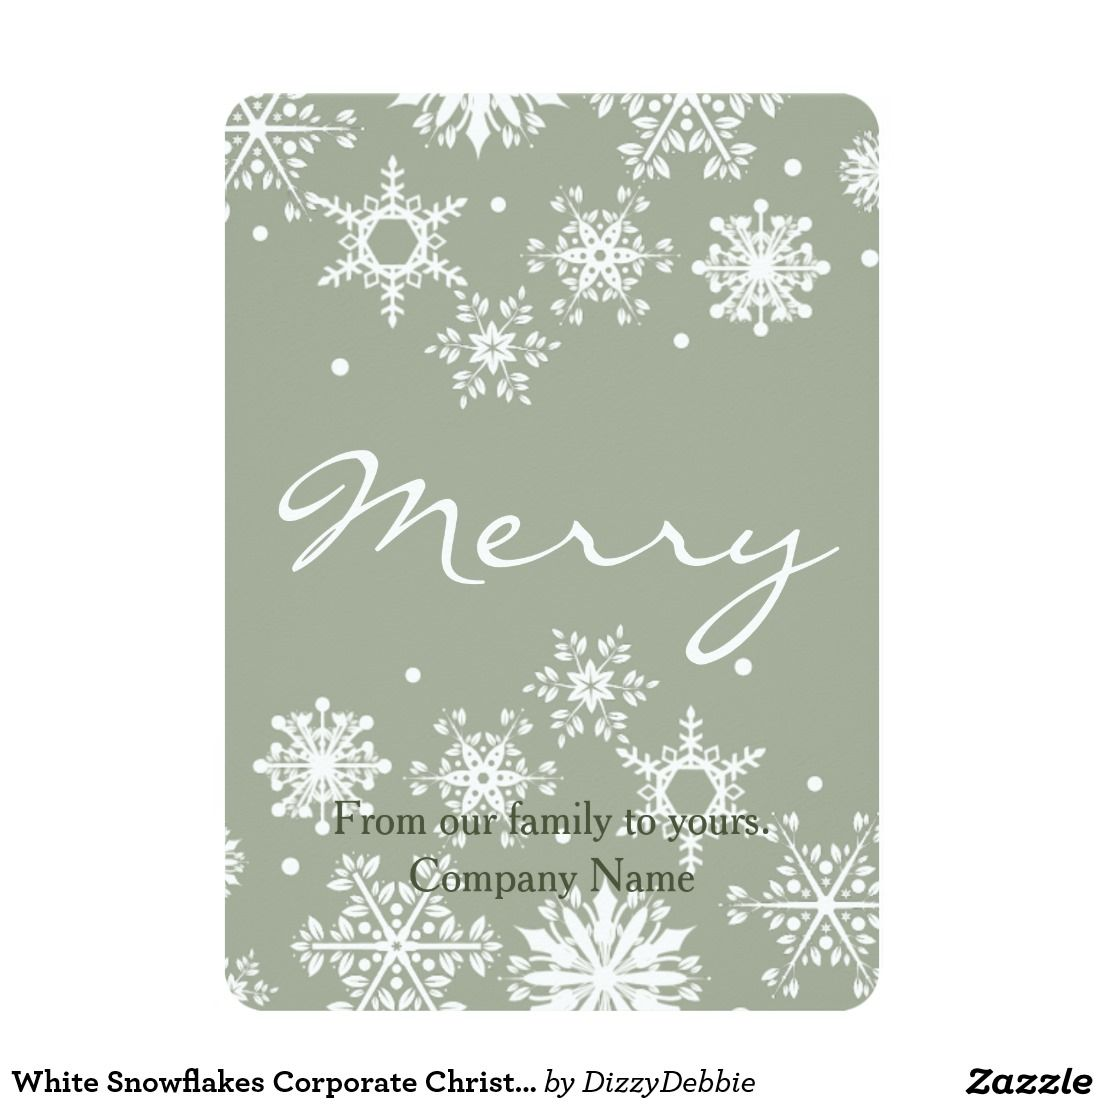 White Snowflakes Corporate Christmas Card Corporate Greeting Cards